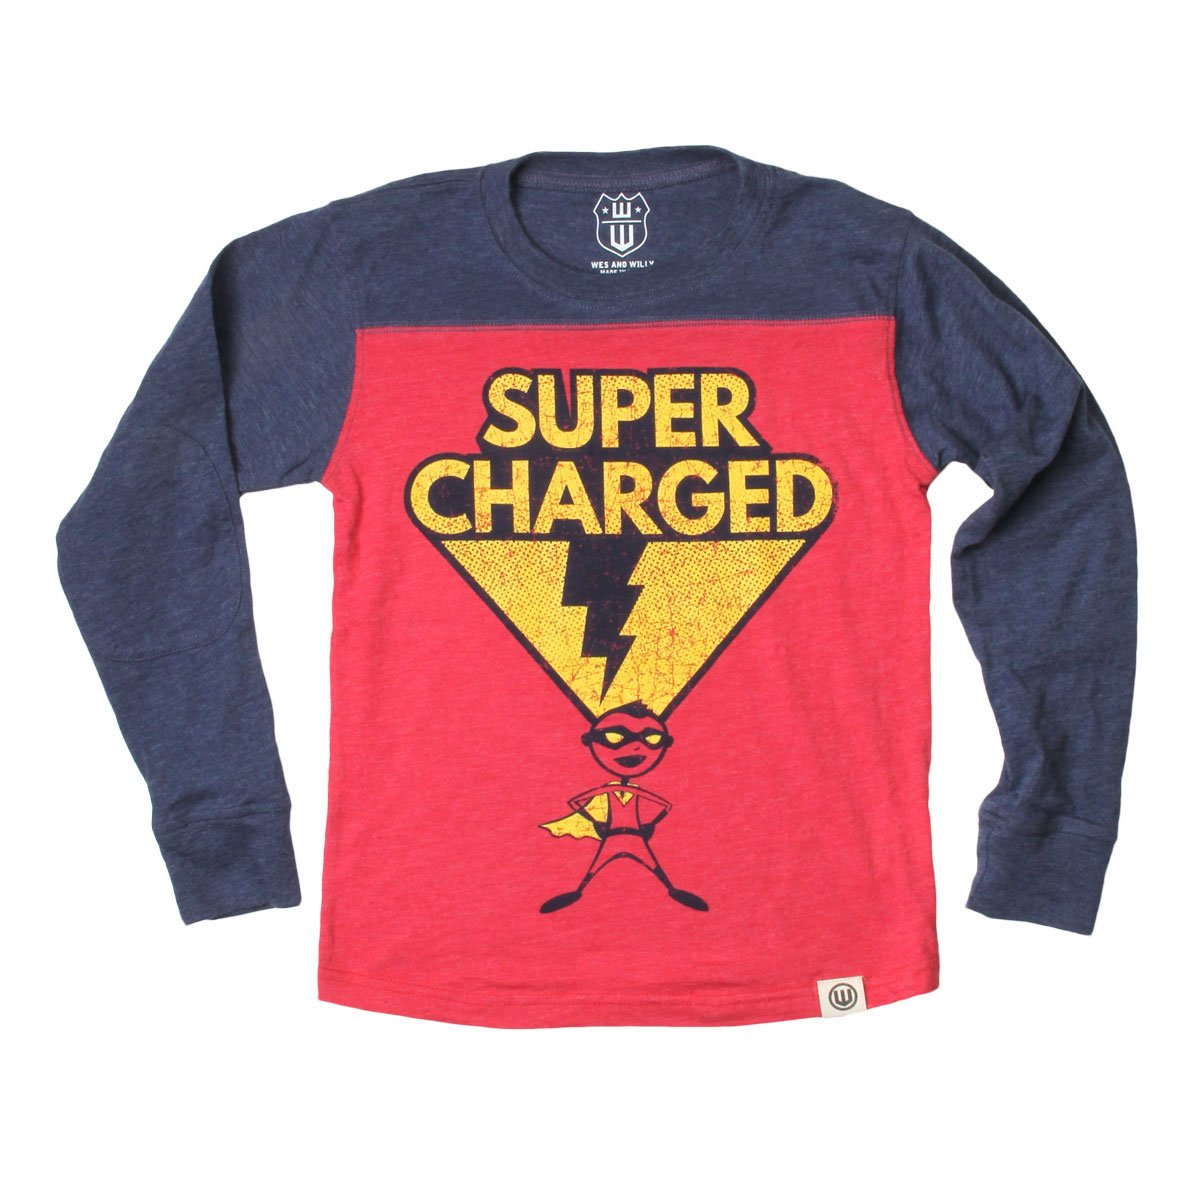 Boys' Super Charged Shirt by Wes and Willy - The Boy's Store